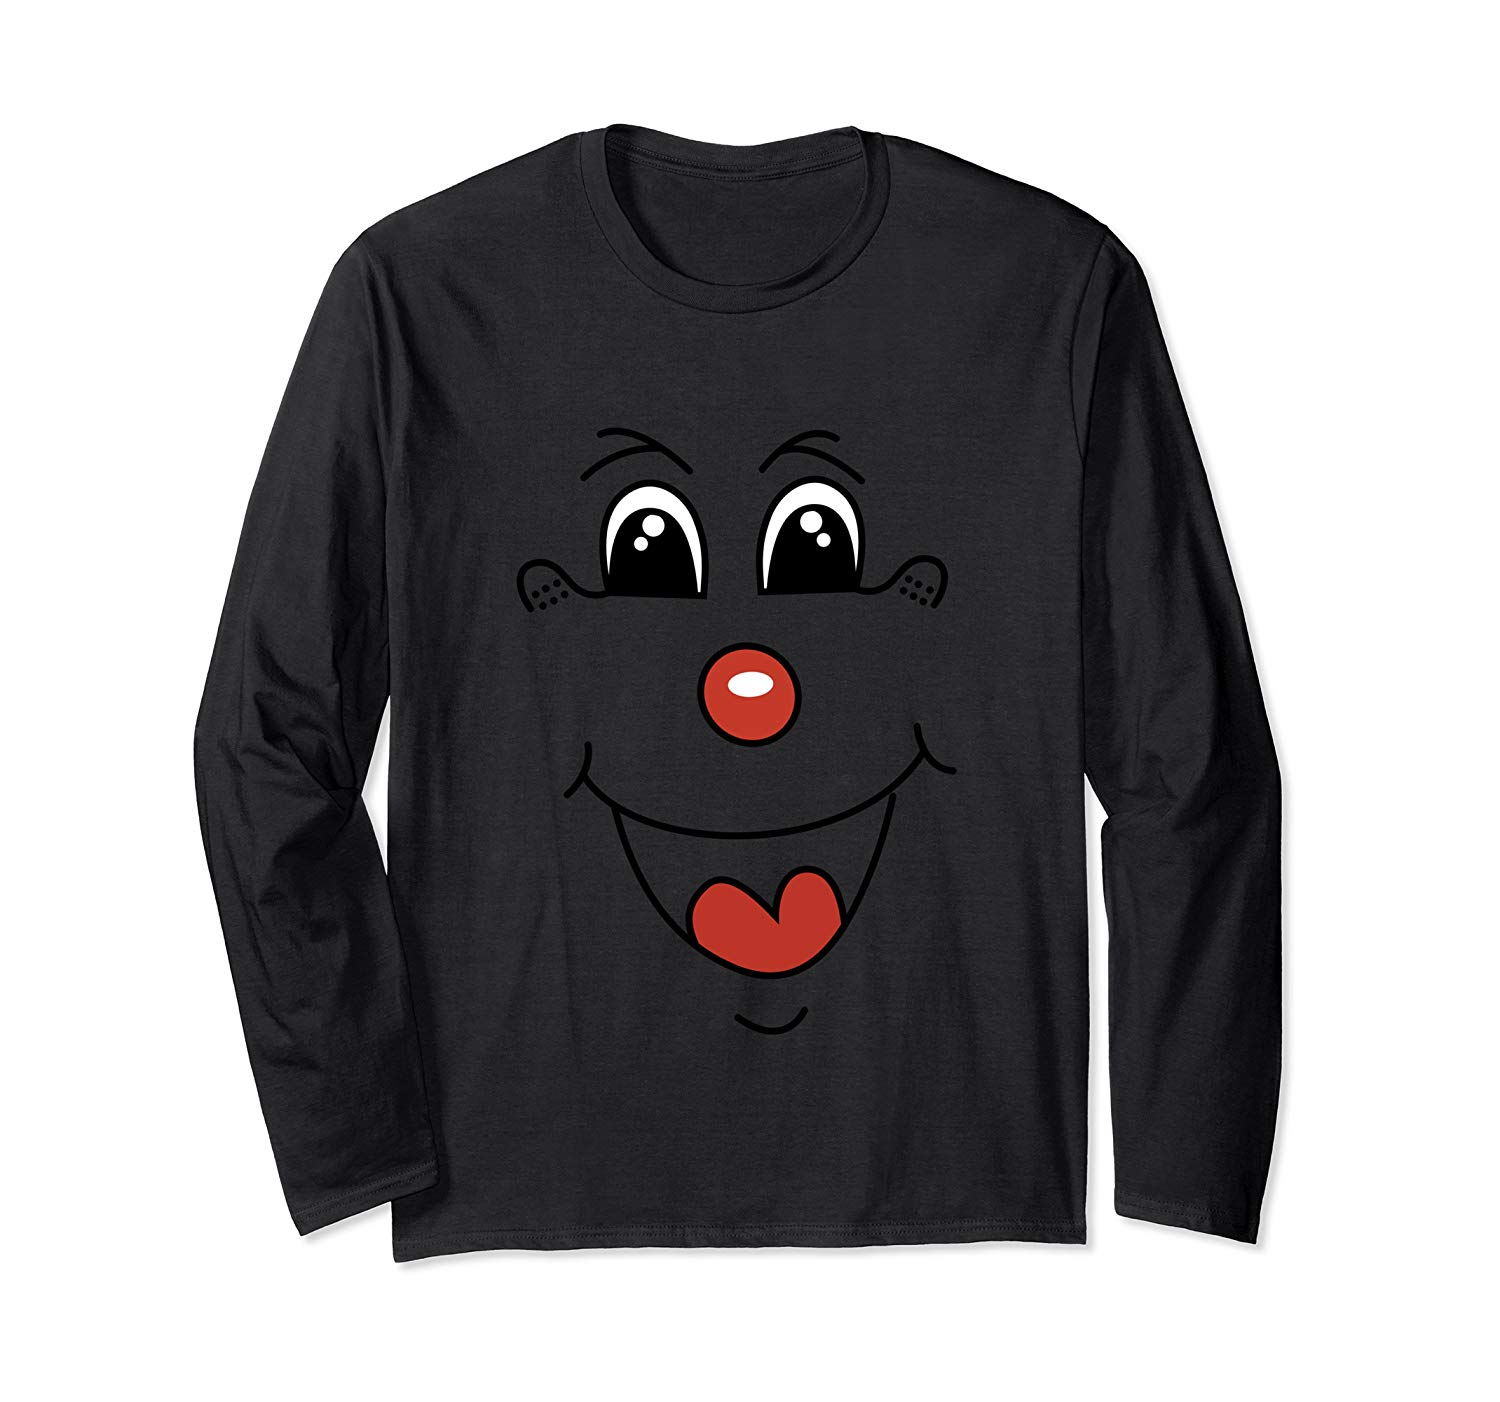 Funny Clown Face For T Shirt